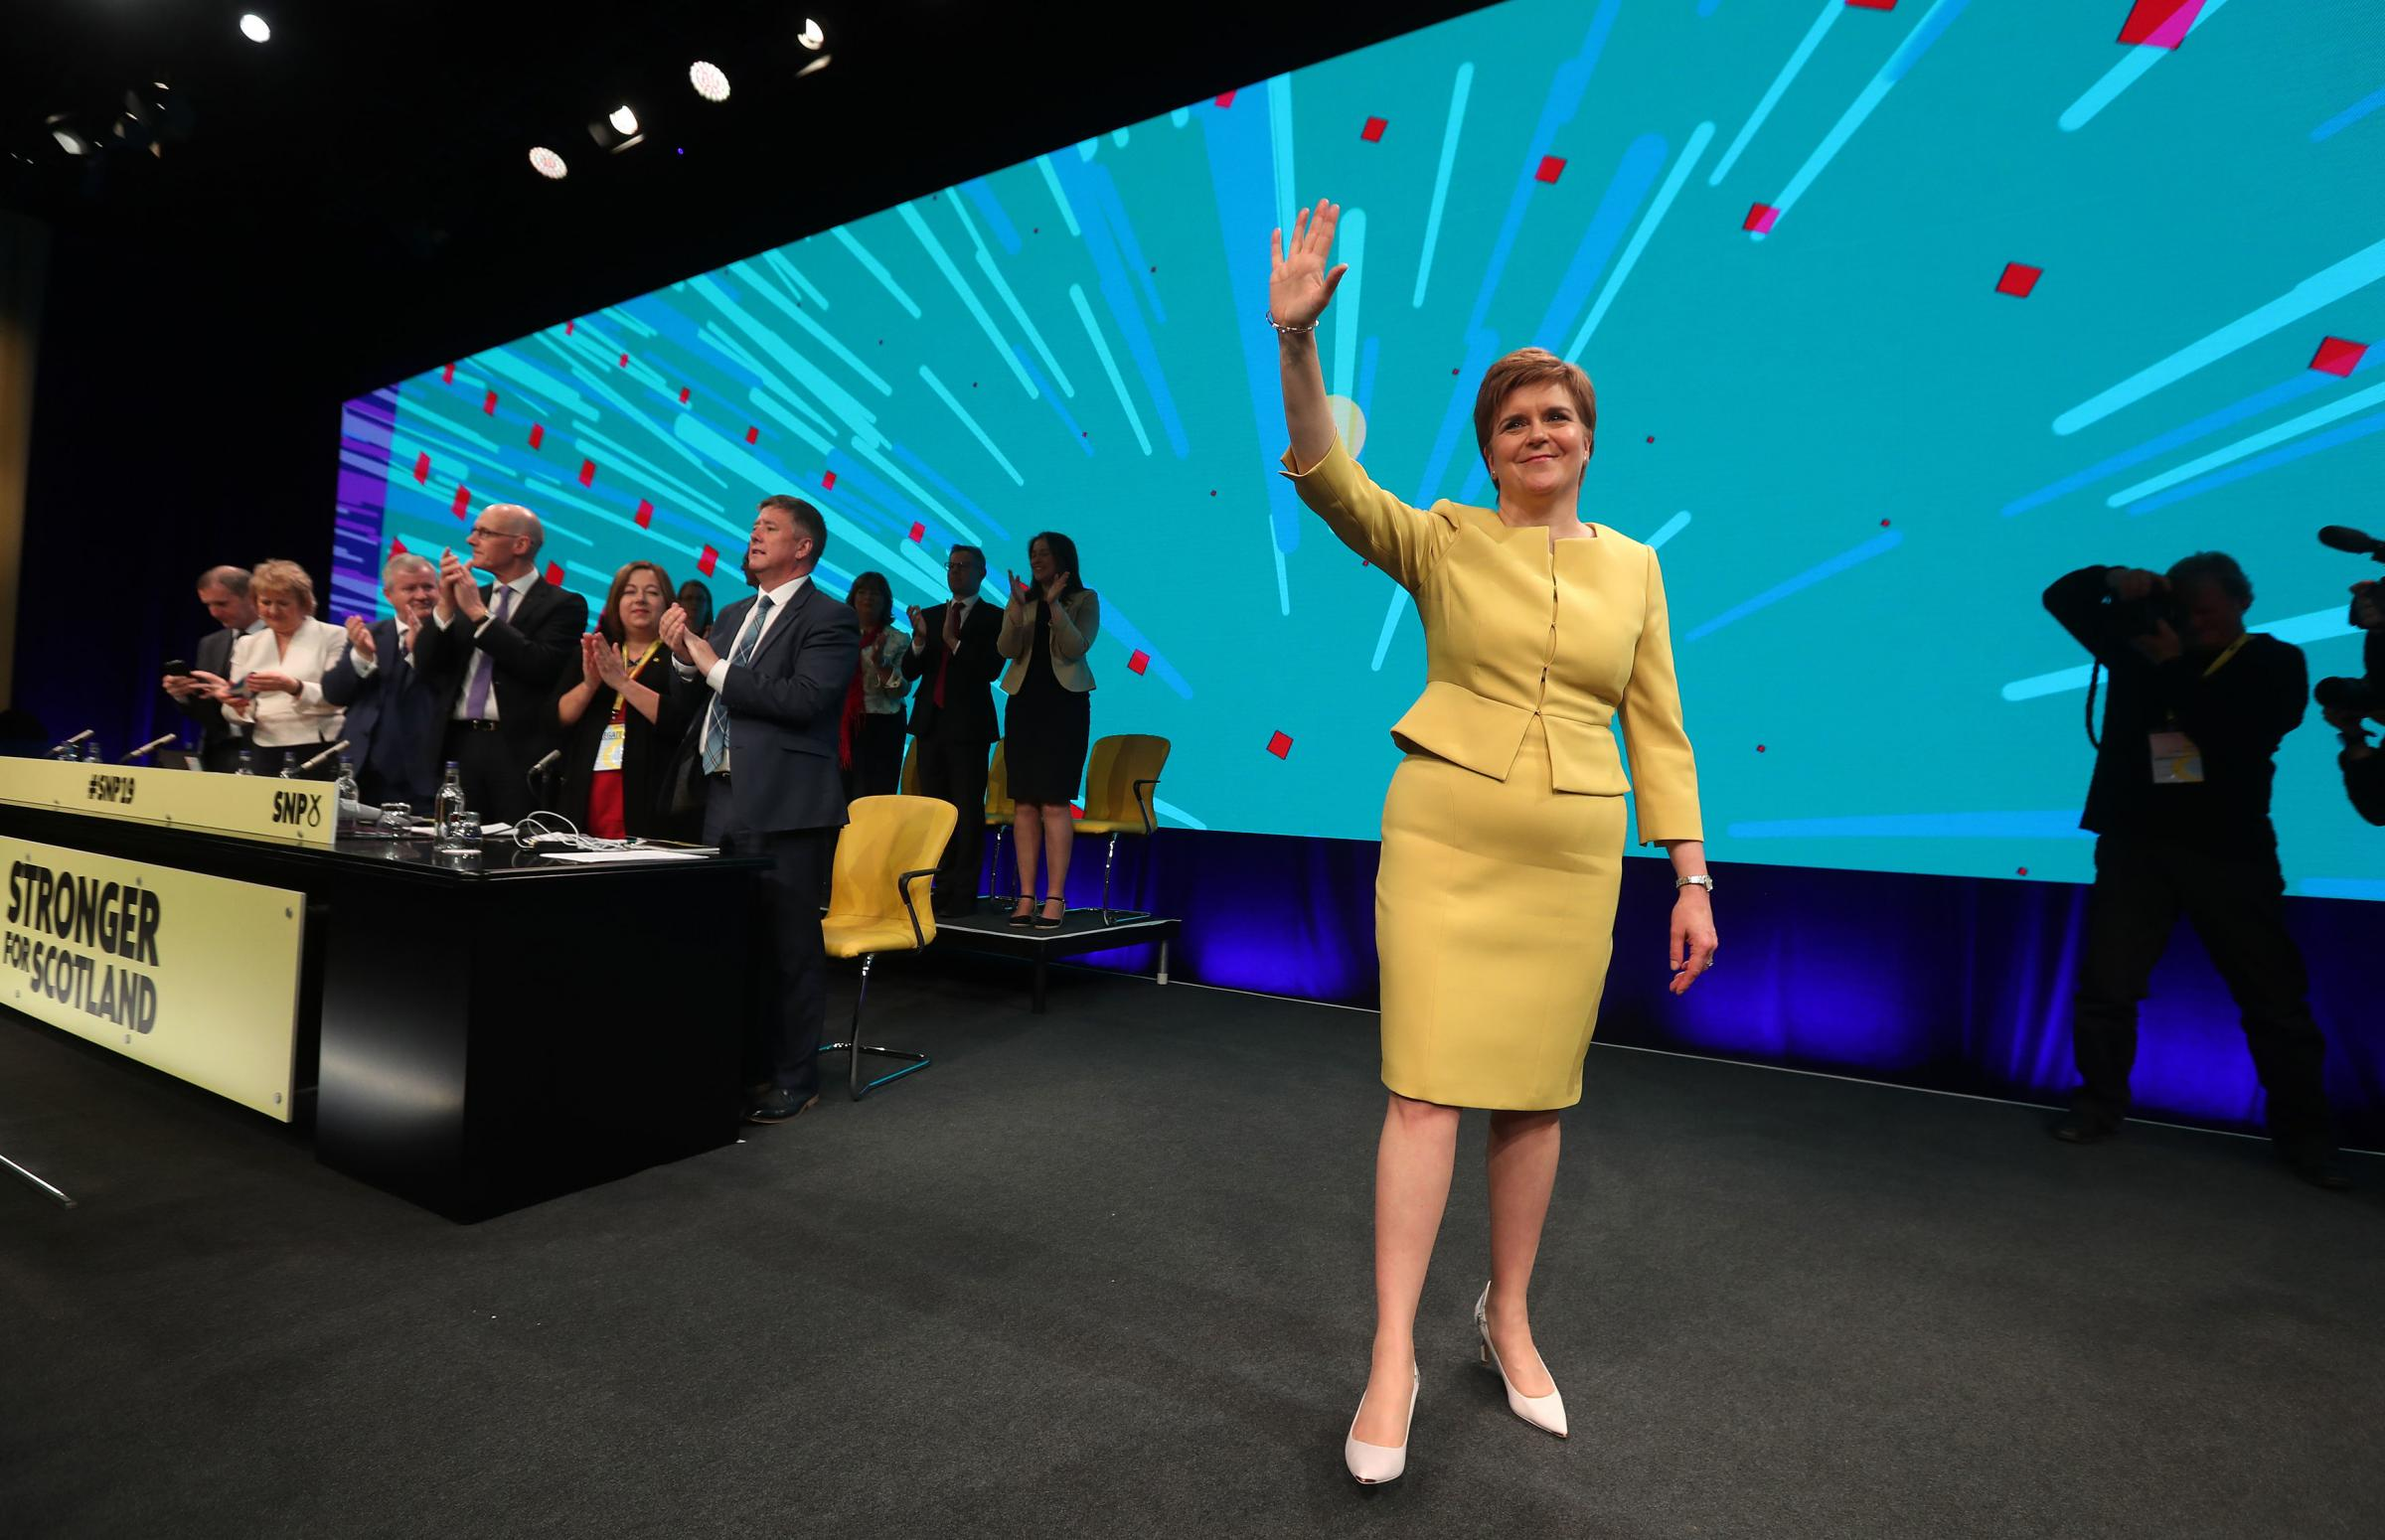 Nicola Sturgeon to seek power for second independence referendum 'within weeks'